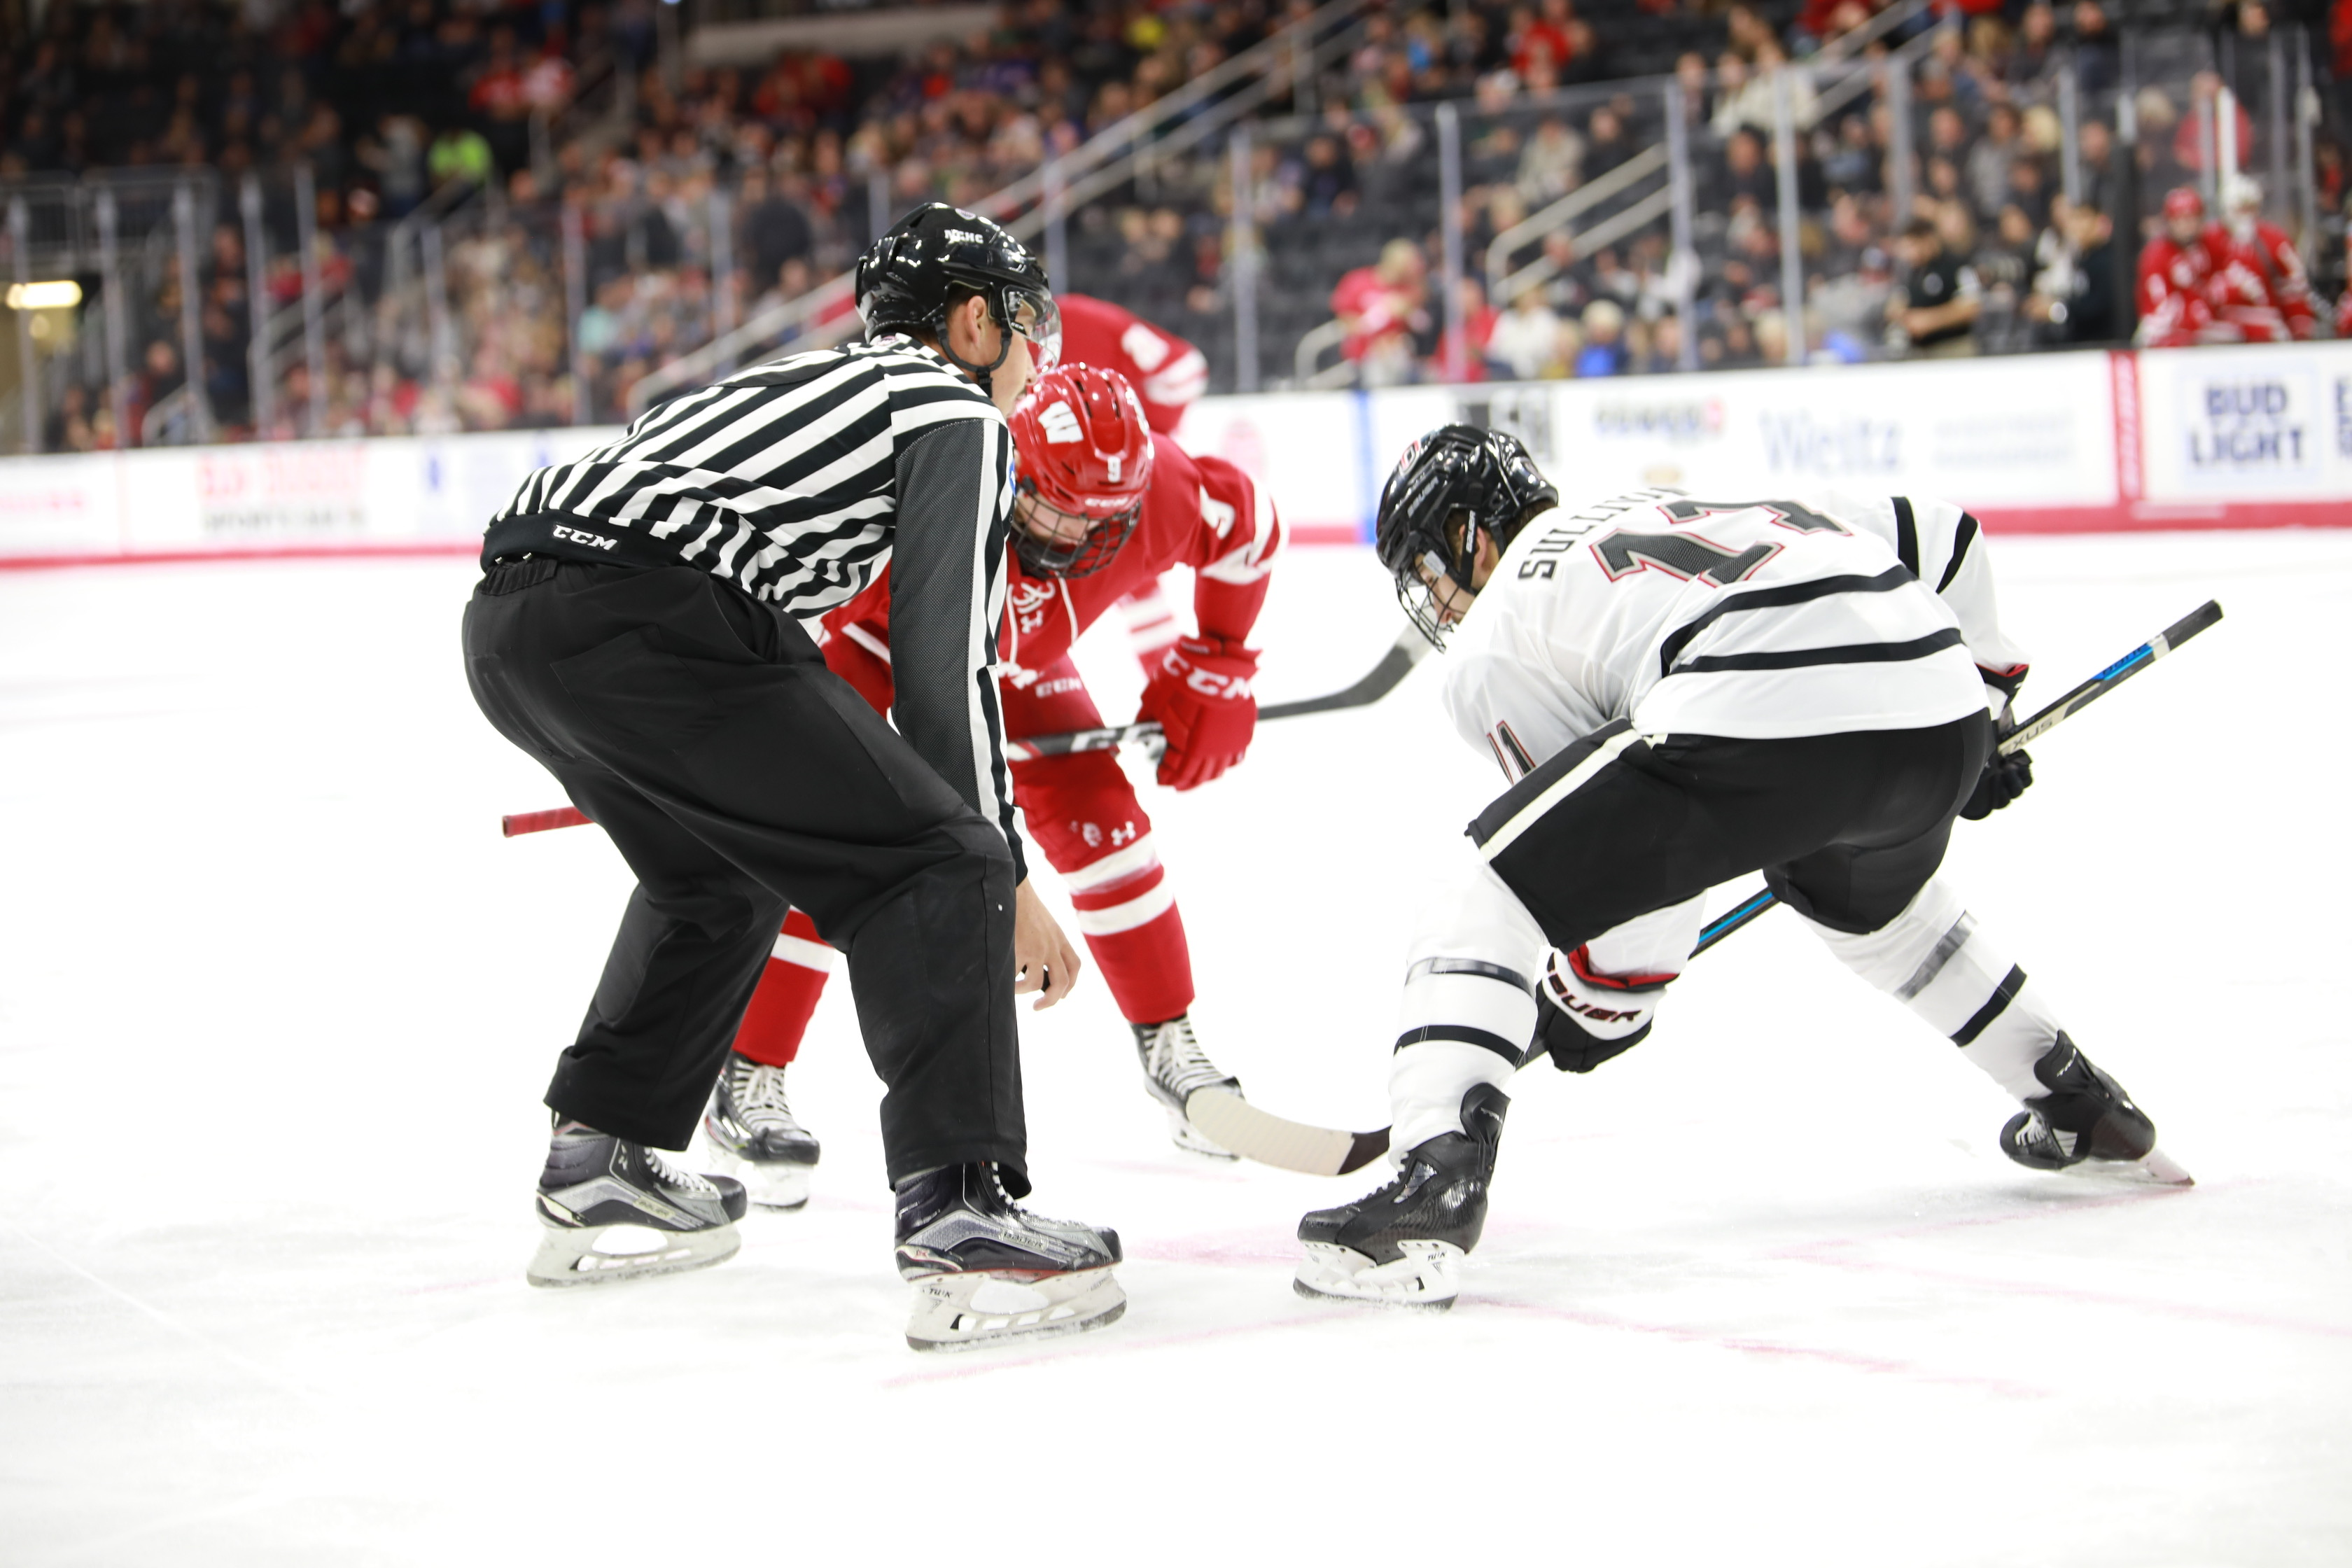 Two hockey players facing off on the ice